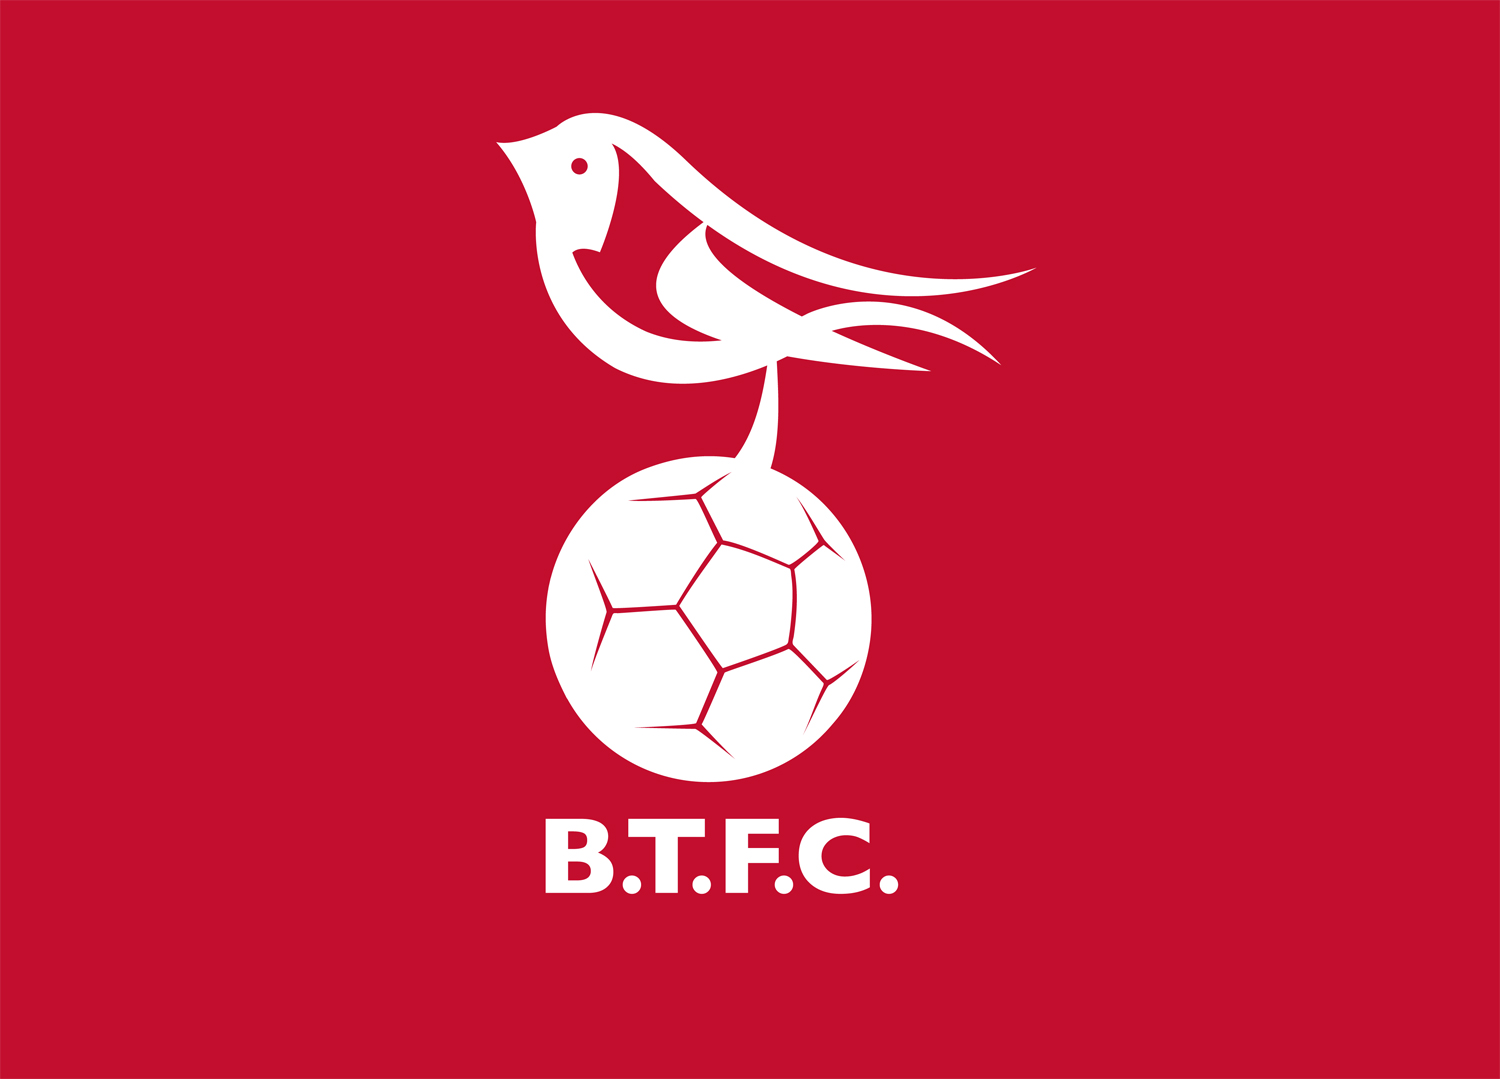 Bracknell Town FC launch new branding and logo for 2016/17